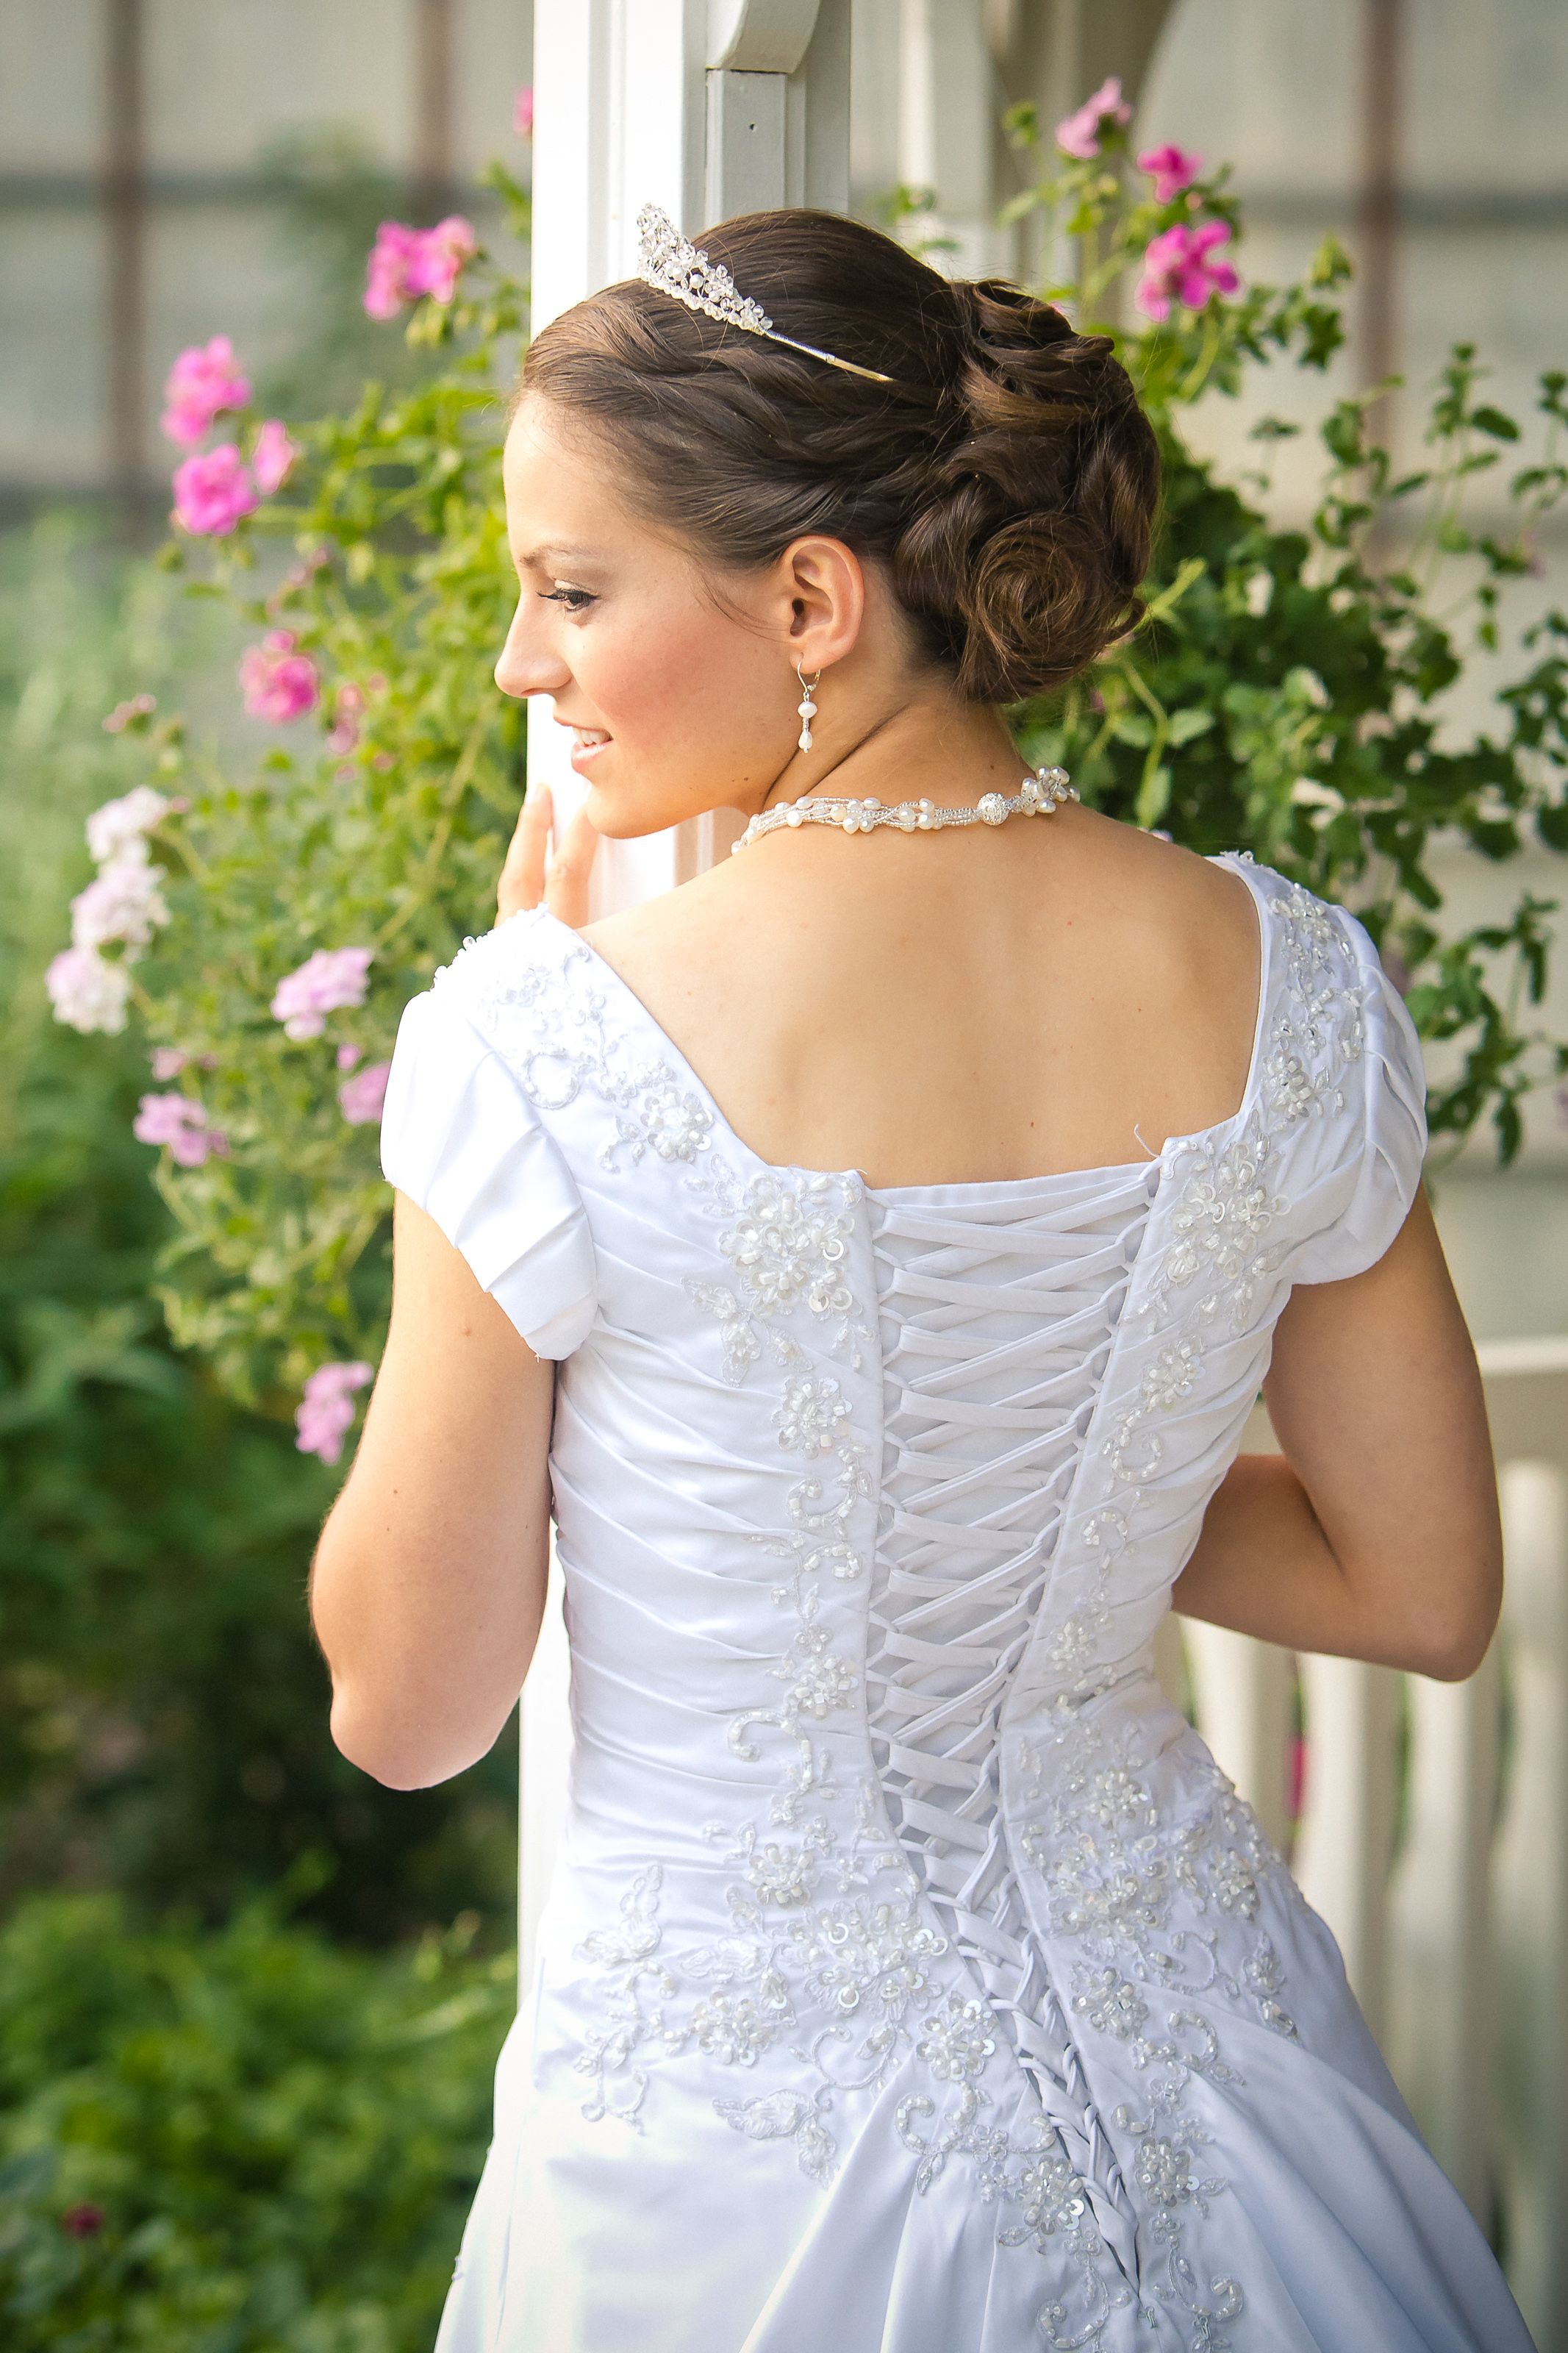 Wedding hair | Coiffures | Pinterest | Wedding Hairstyles ...